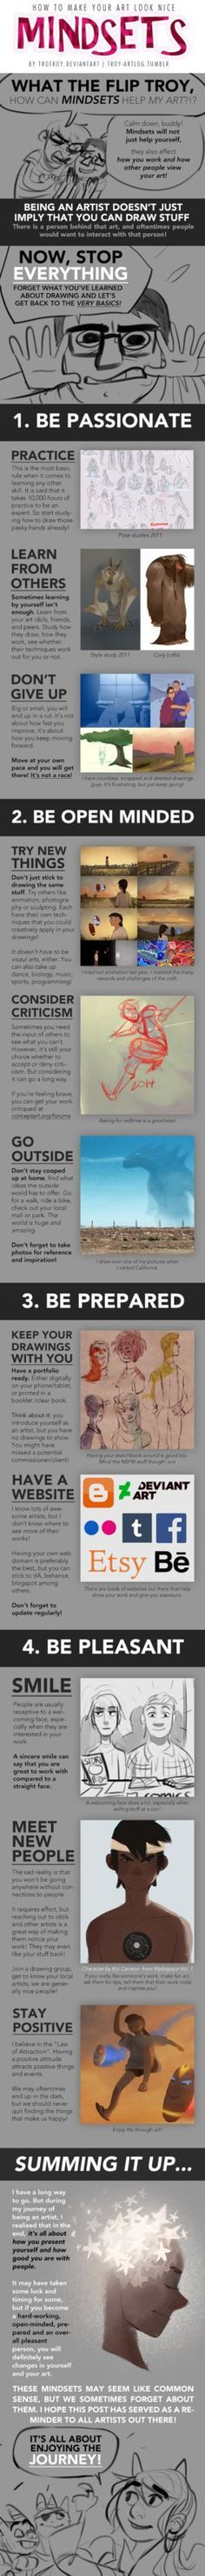 """Hi guys! Here's the next installment for my """"How to Make Your Art Look Nice"""" tutorial series. For those planning to improve their work ethics, this is for you!I came across the realization that it&..."""